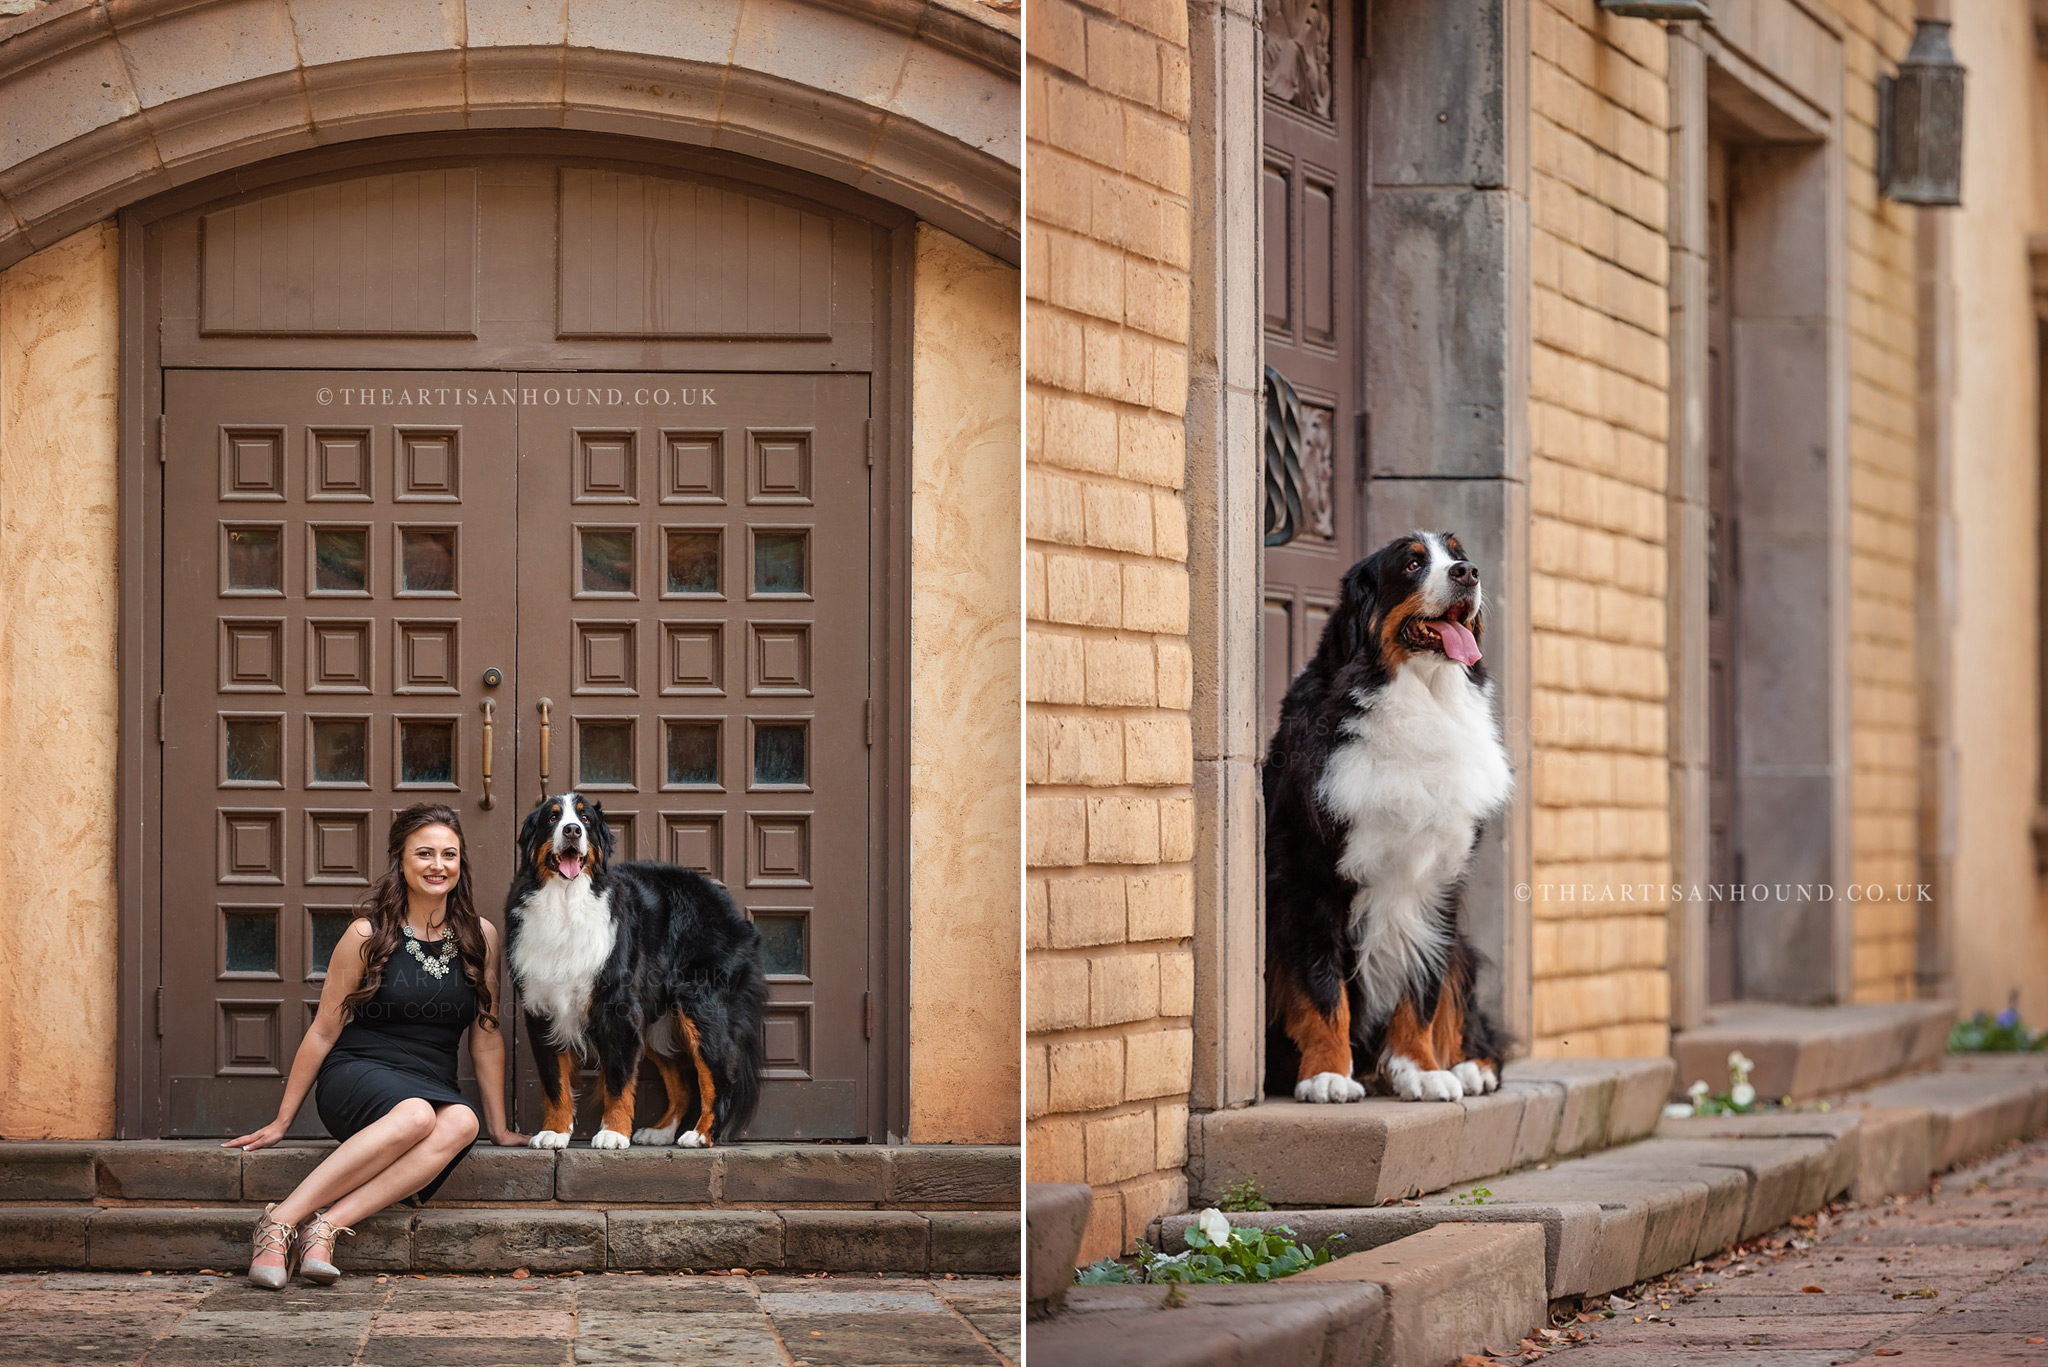 Dog and owner sitting in urban doorway